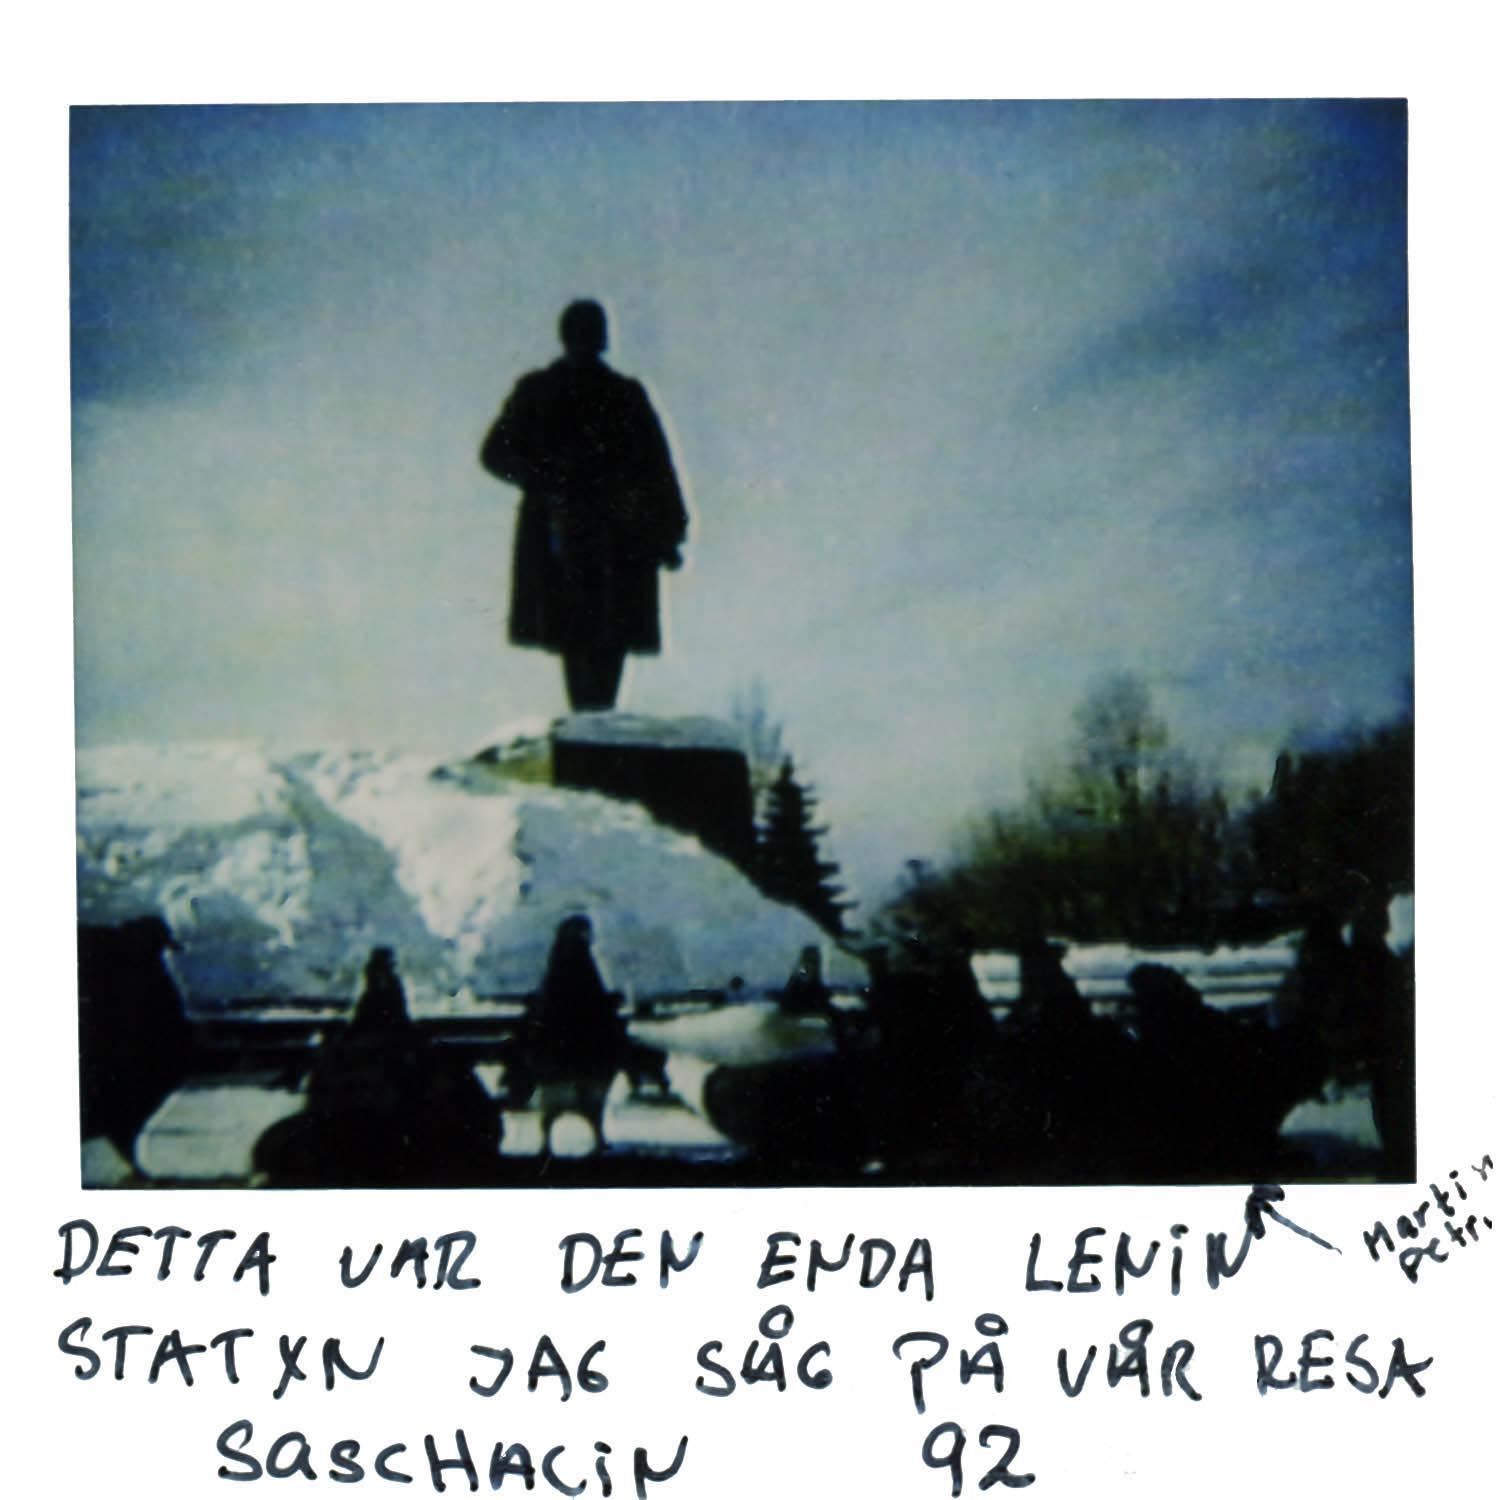 This was the only statue of Lenin i saw on our trip through Sachalin -92  the arrow points to Marin&Petri